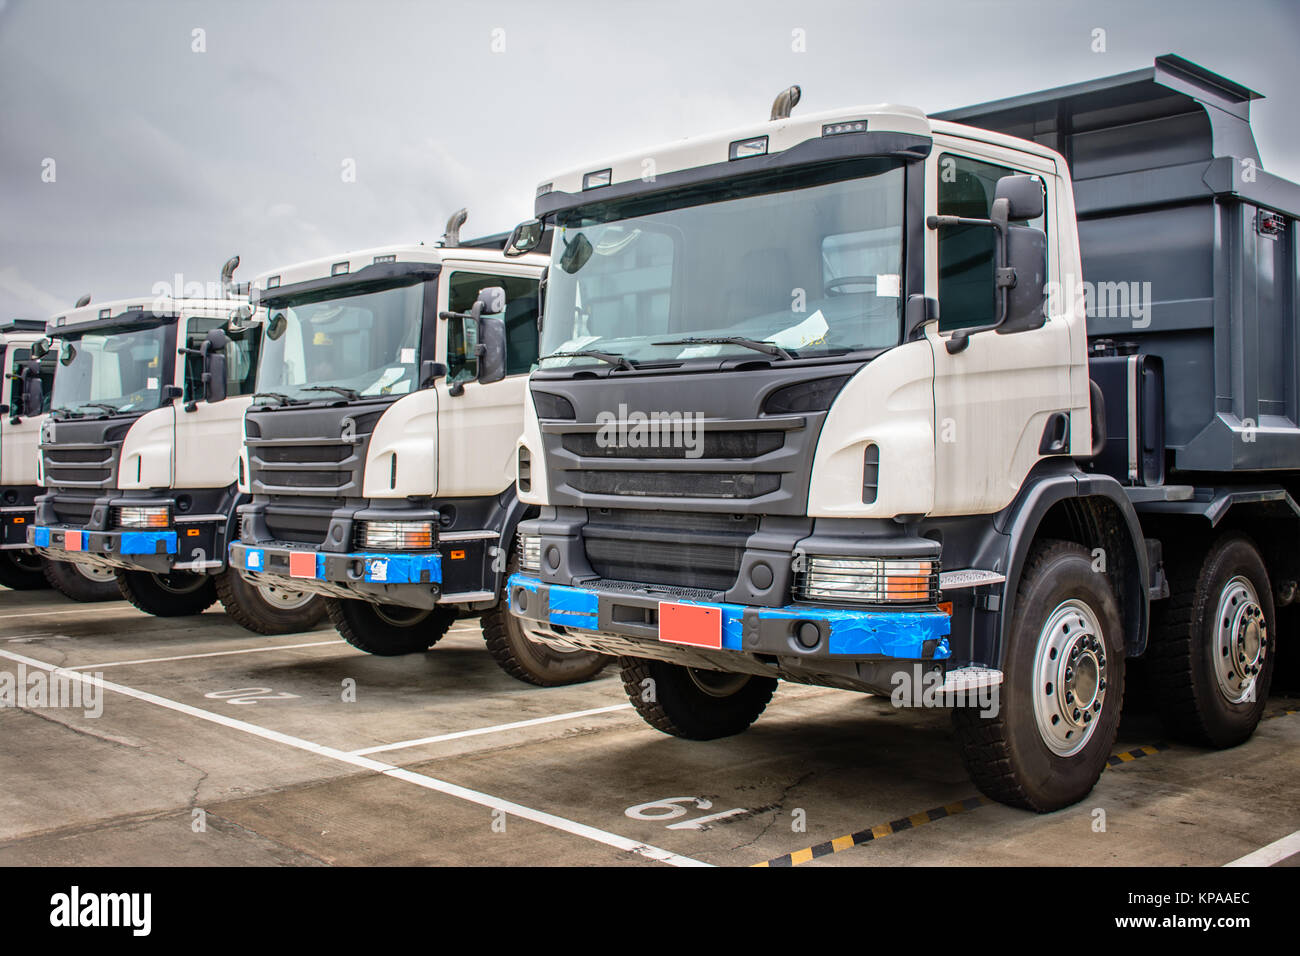 photo of brand new dump trucks, to use in construction site - Stock Image